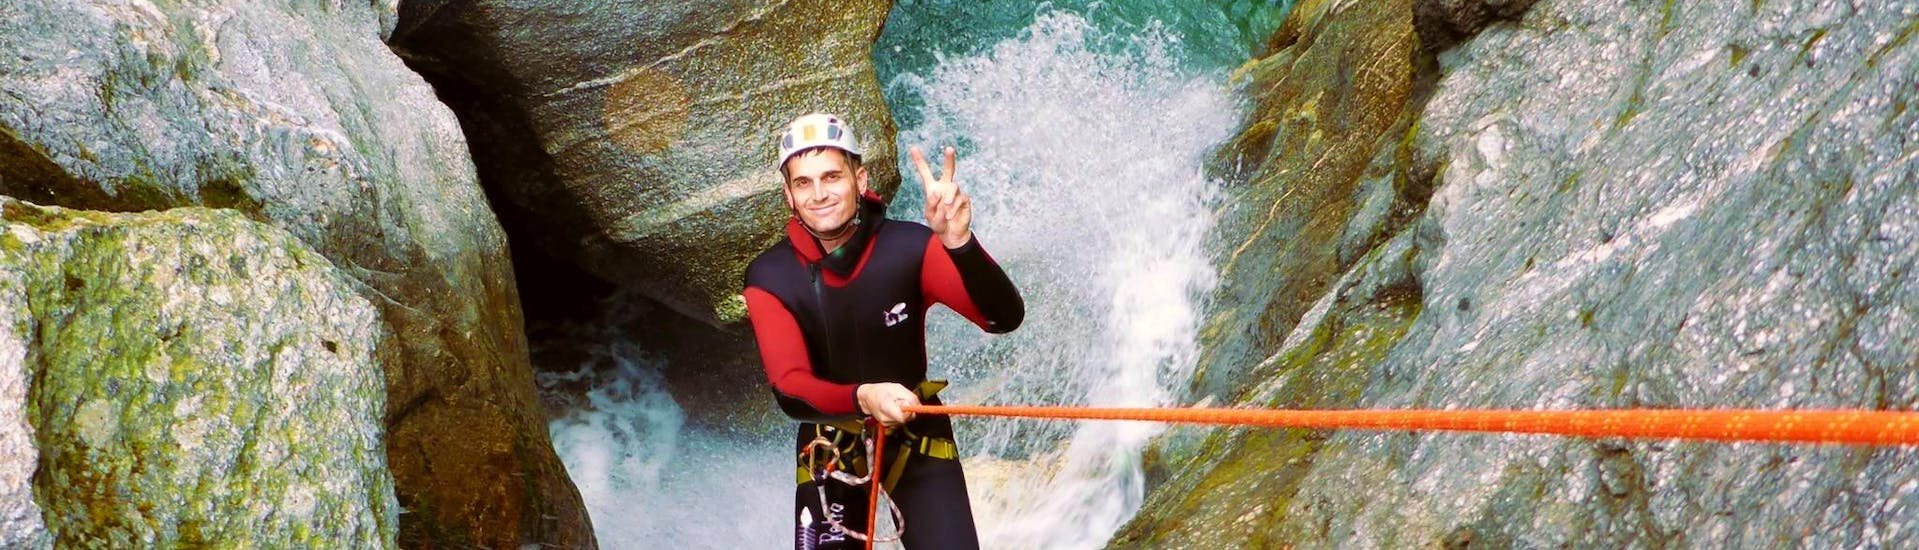 """A participant of the Canyoning """"Blue Lagoon"""" in Zemmschlucht is roping down over a high rock cliff with the help of an experienced guide from Freiluftakademie."""